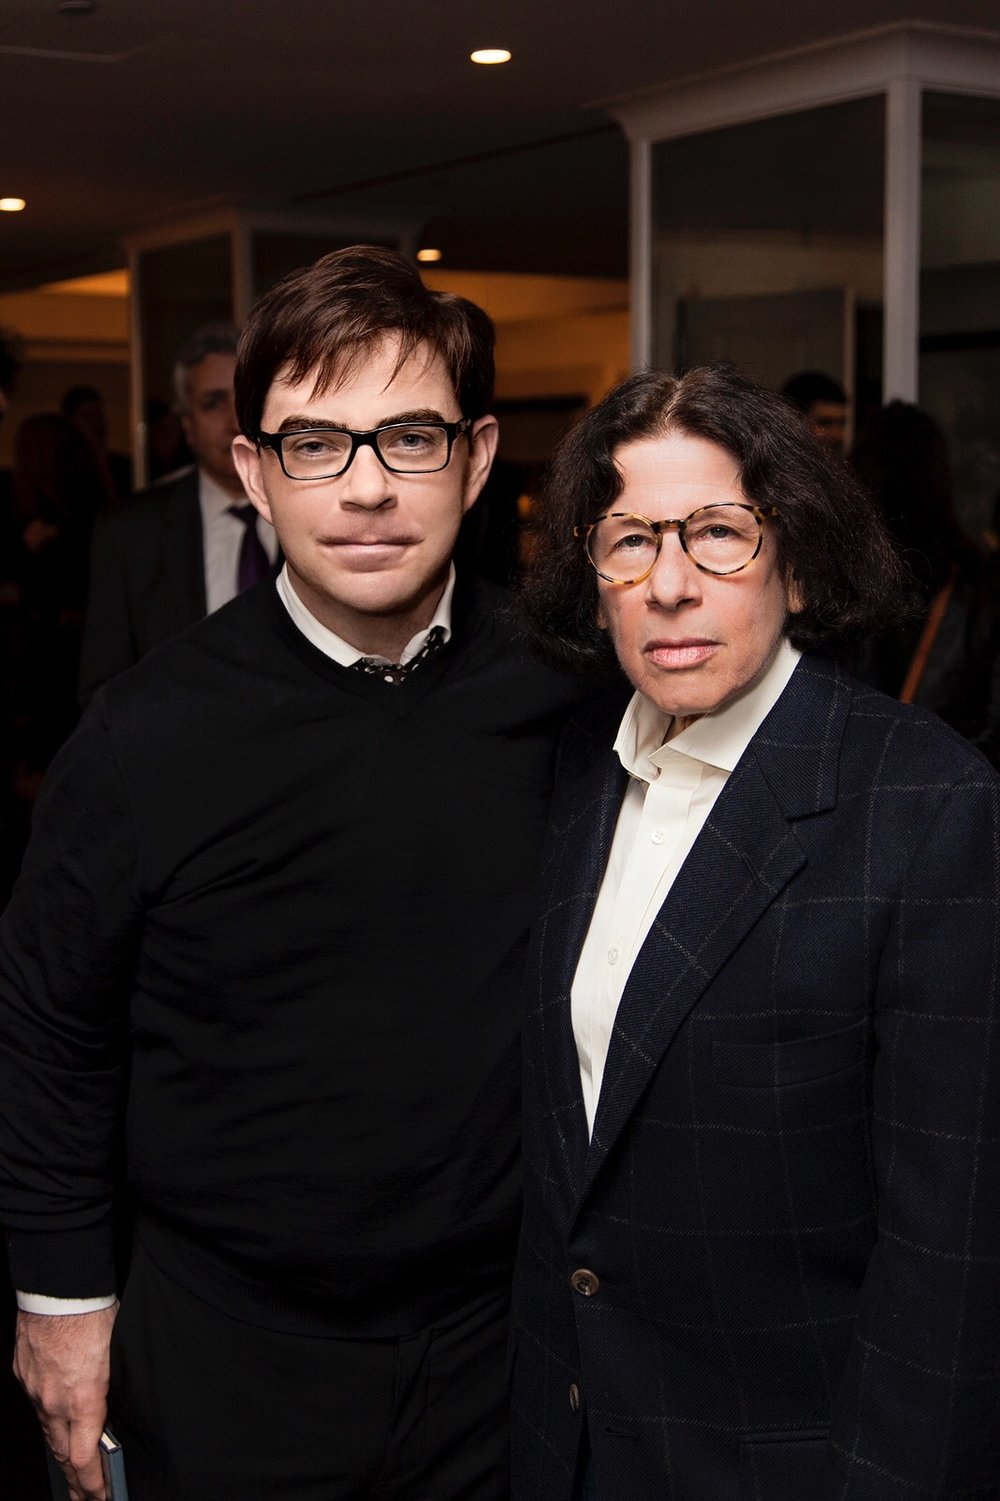 360bespoke founder Jeremy Murphy with noted author/ commentator/ media gadfly Fran Lebowitz at The Surrey hotel.